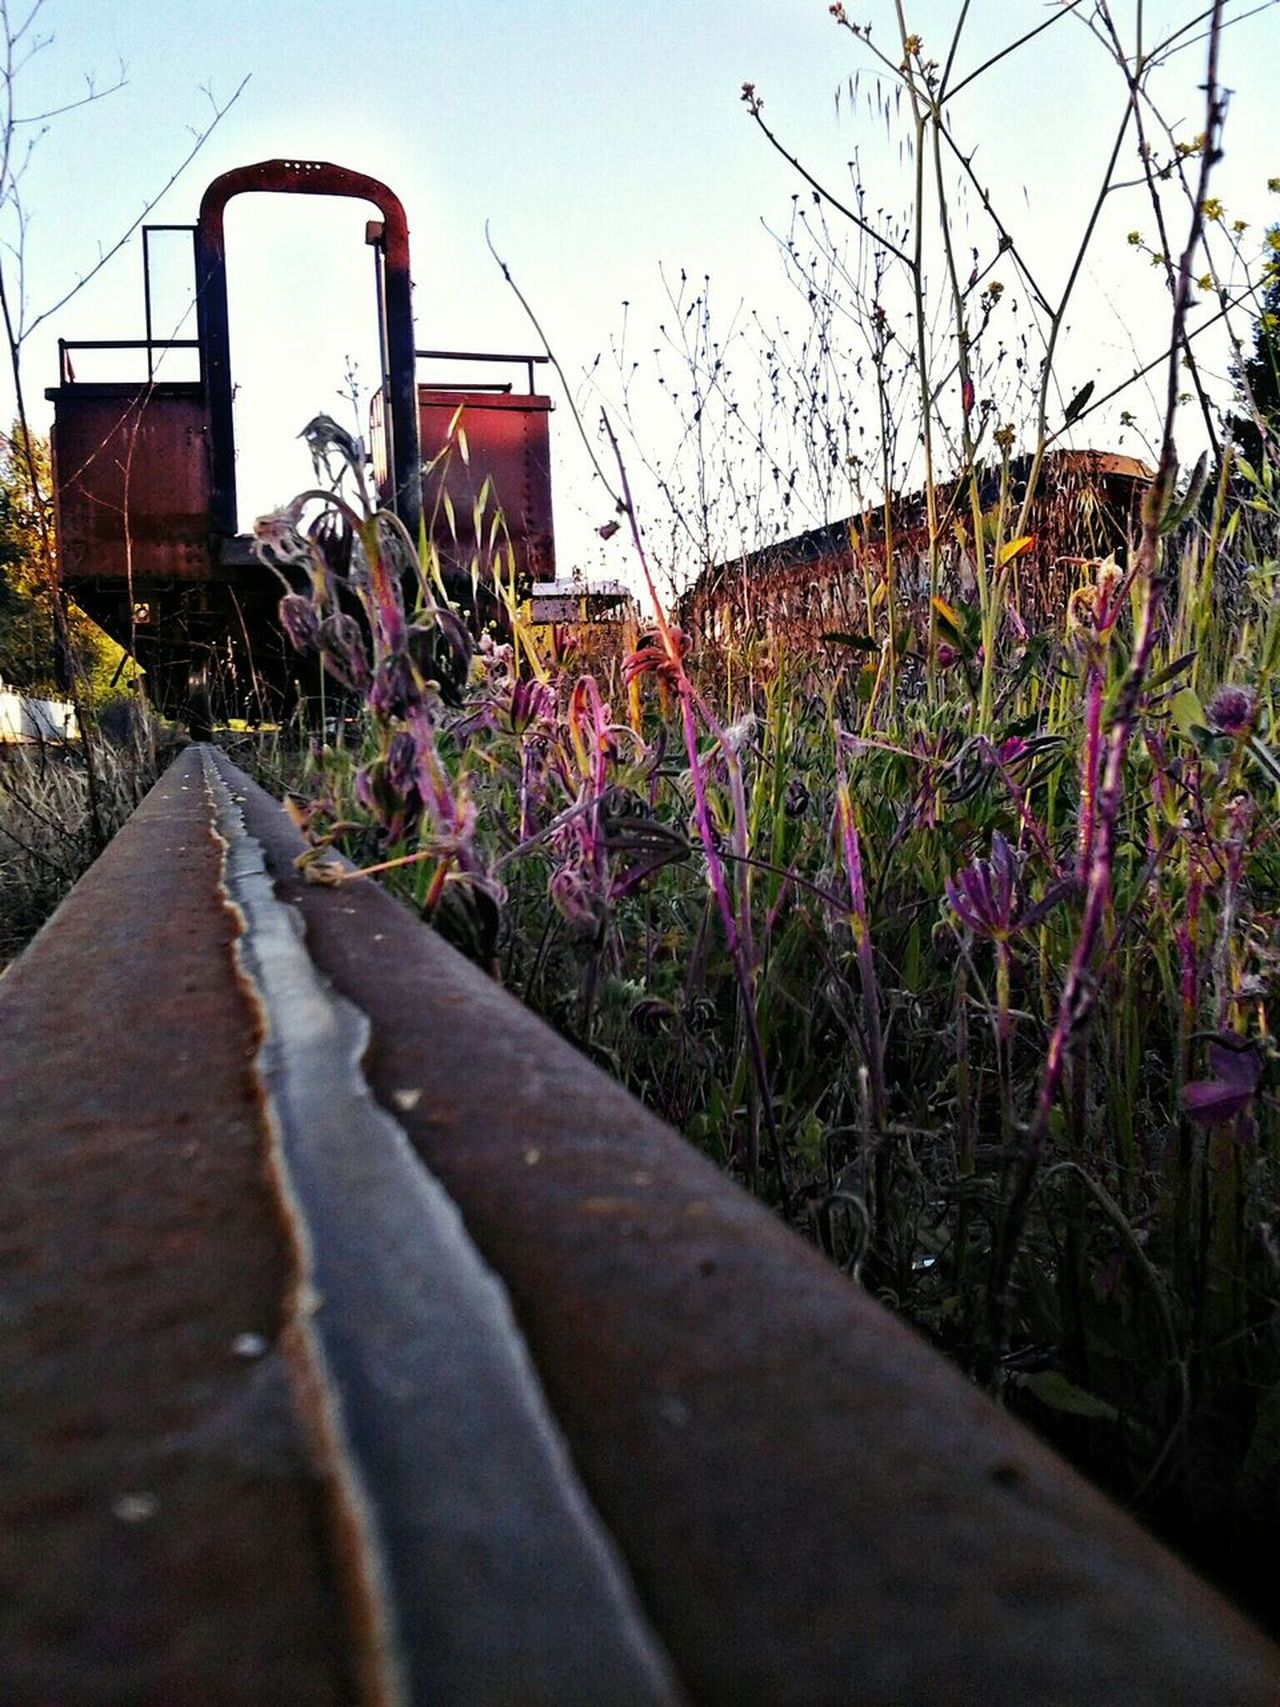 Outdoors Art Is Everywhere Trains & Railroad EyeEmNewHere Skunk Train Willits California To Fort Bragg California Trainlover Children And Trains Wilderness Area Train Tracks Skunk Train Trainphotography Northern California Sunset Natures Canvas Beauty In Nature No People The Great Outdoors - 2017 EyeEm Awards